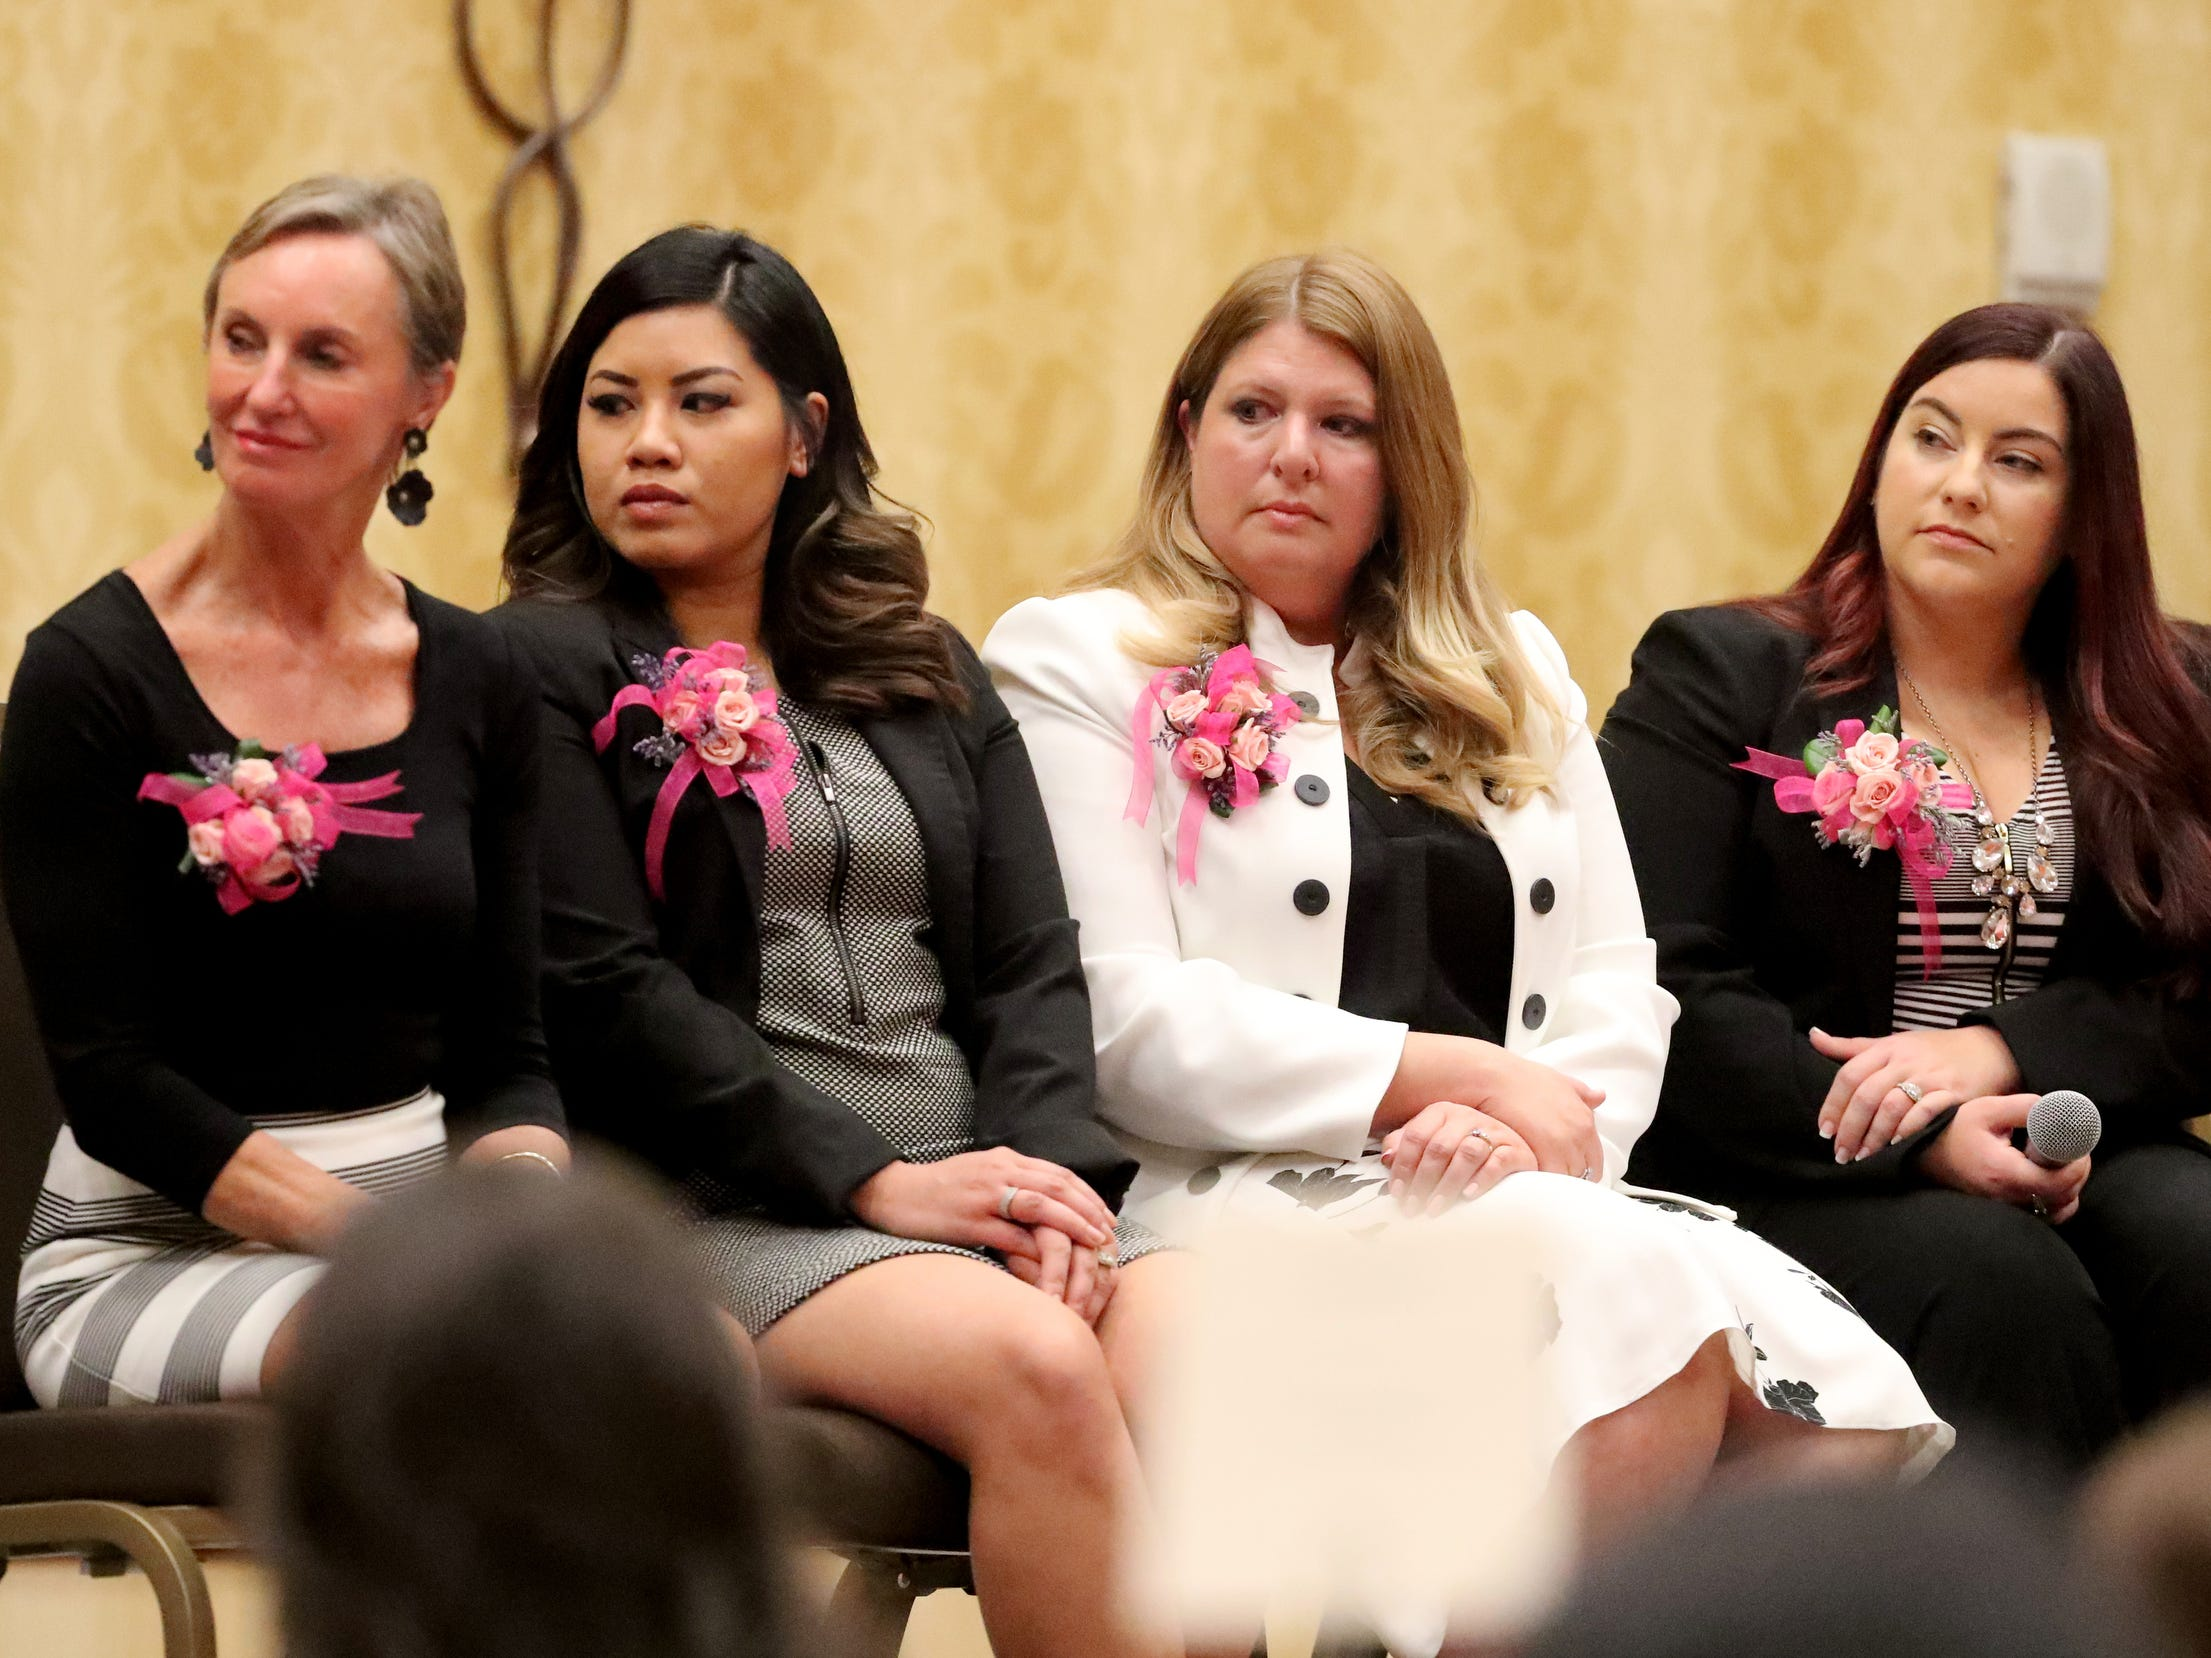 Honorees Dr. Elizabeth Laroche, Amy Jennings, Ladawna Parham, and Rebecca Goodwin, listen to answers to questions by other honorees during the Murfreesboro Magazine's 2019 Women in Business Luncheon on Tuesday, March 12, 2019, at the Embassy Suites Murfreesboro.